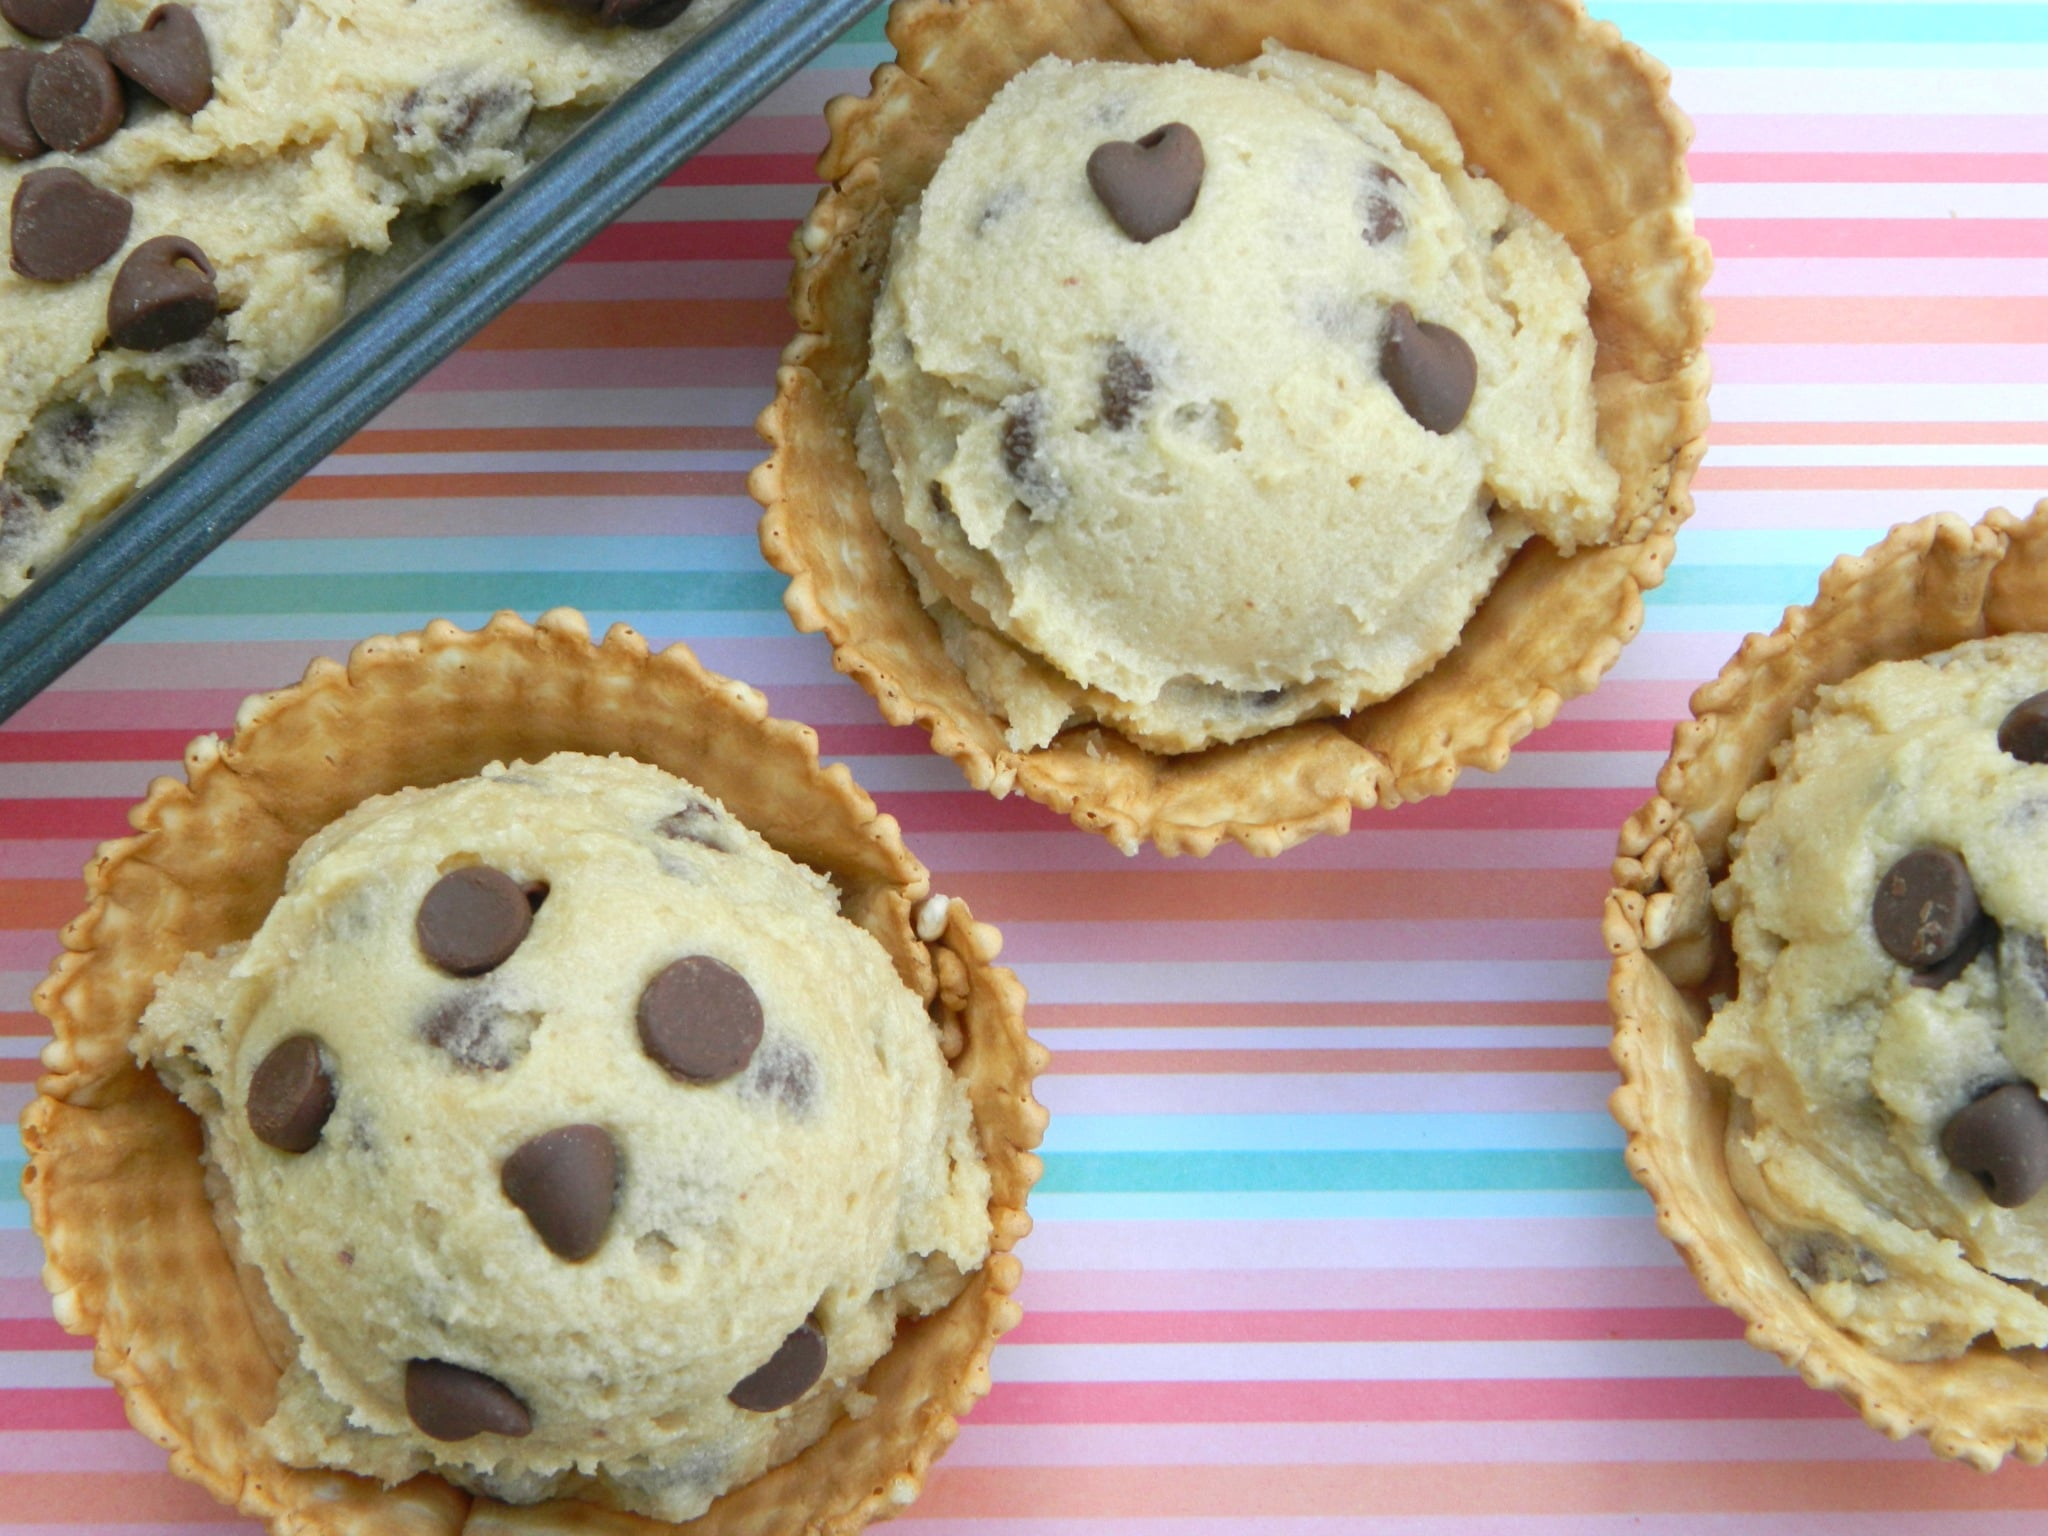 The Best Edible Chocolate Chip Cookie Dough!